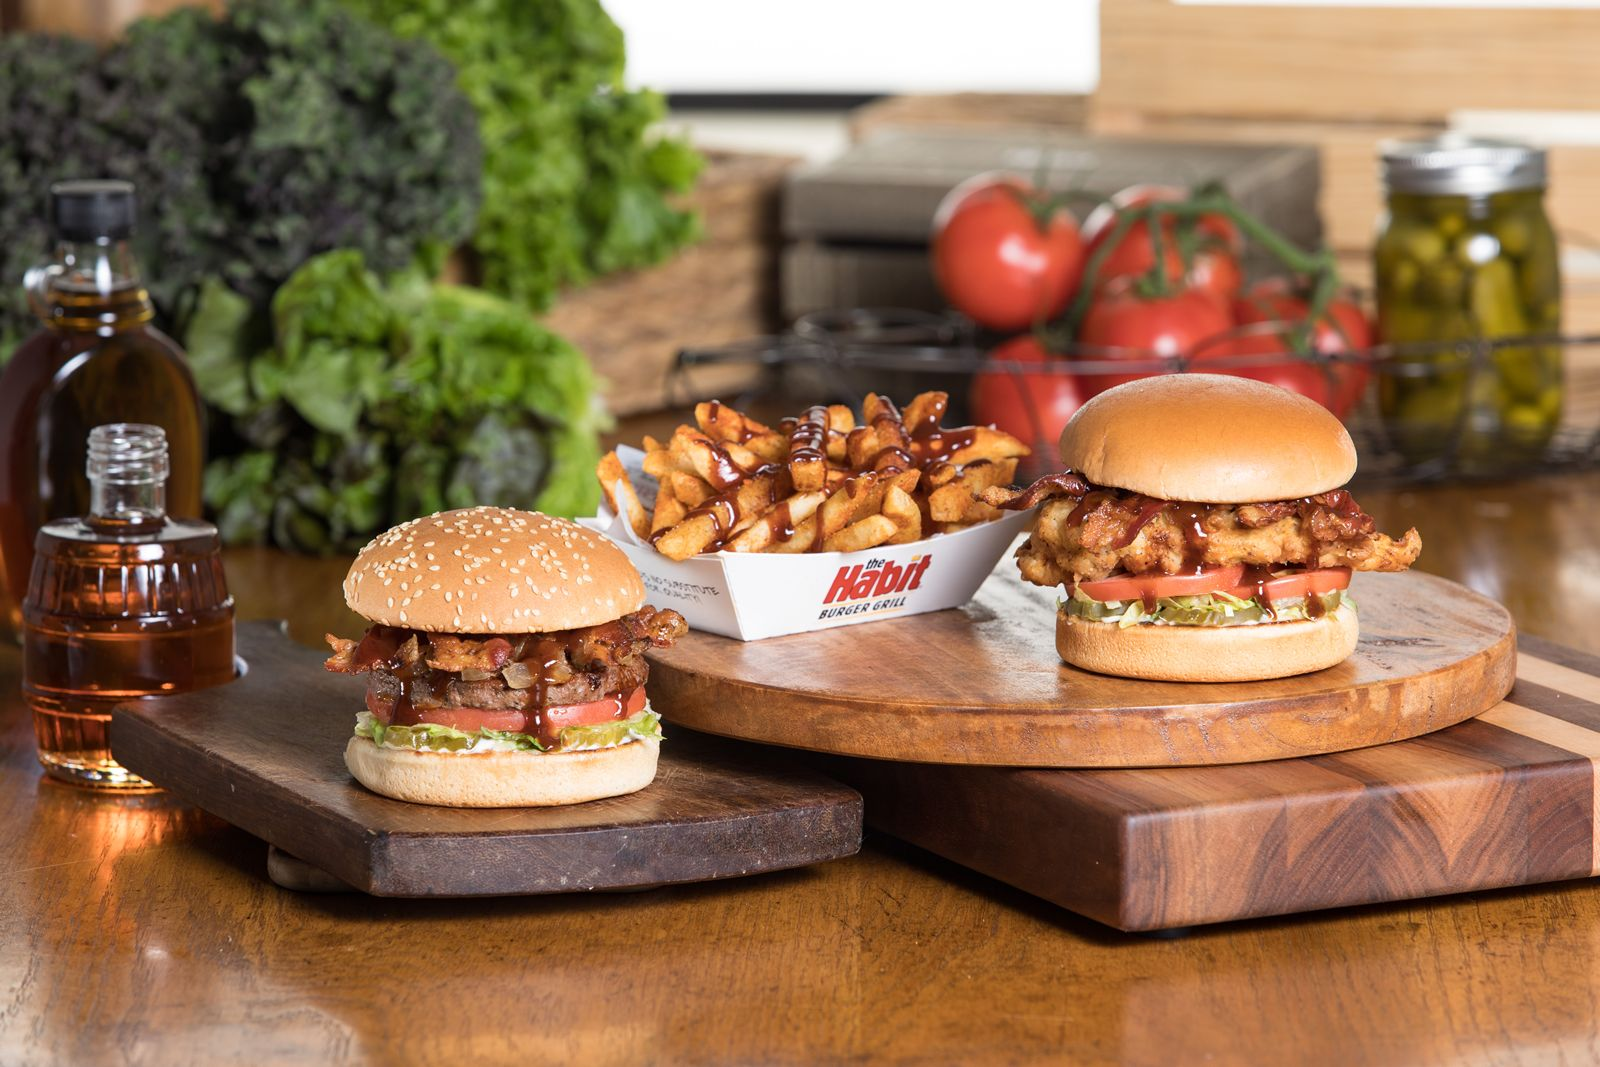 The Habit Burger Grill Fires Up New Bourbon Flavored Menu Items